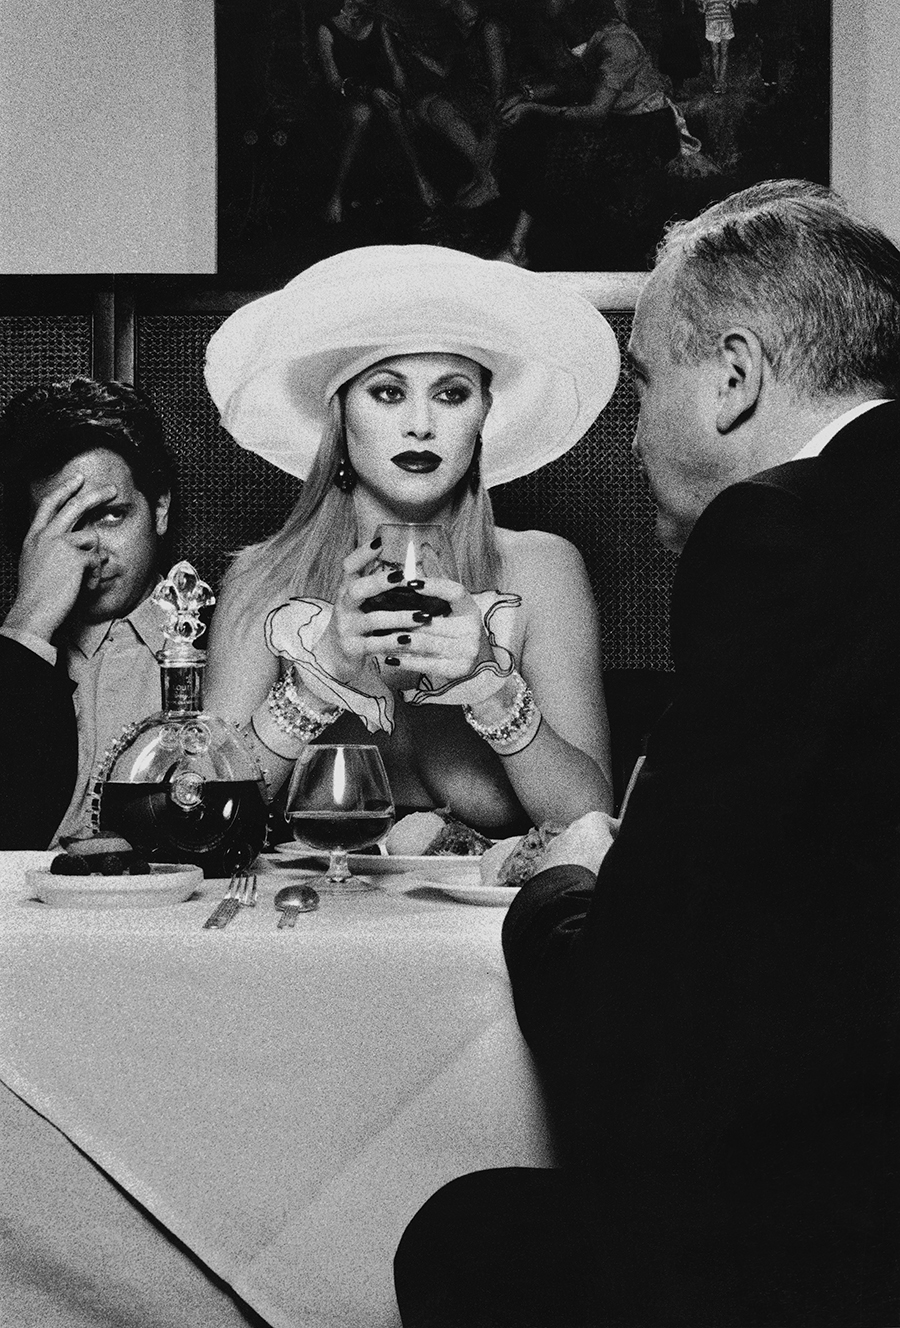 Tony_Ward_studio_Tableaux_vivants_dinner_for_two_big_hats_glamour_nude_peter_flarety_eduardo_glandt